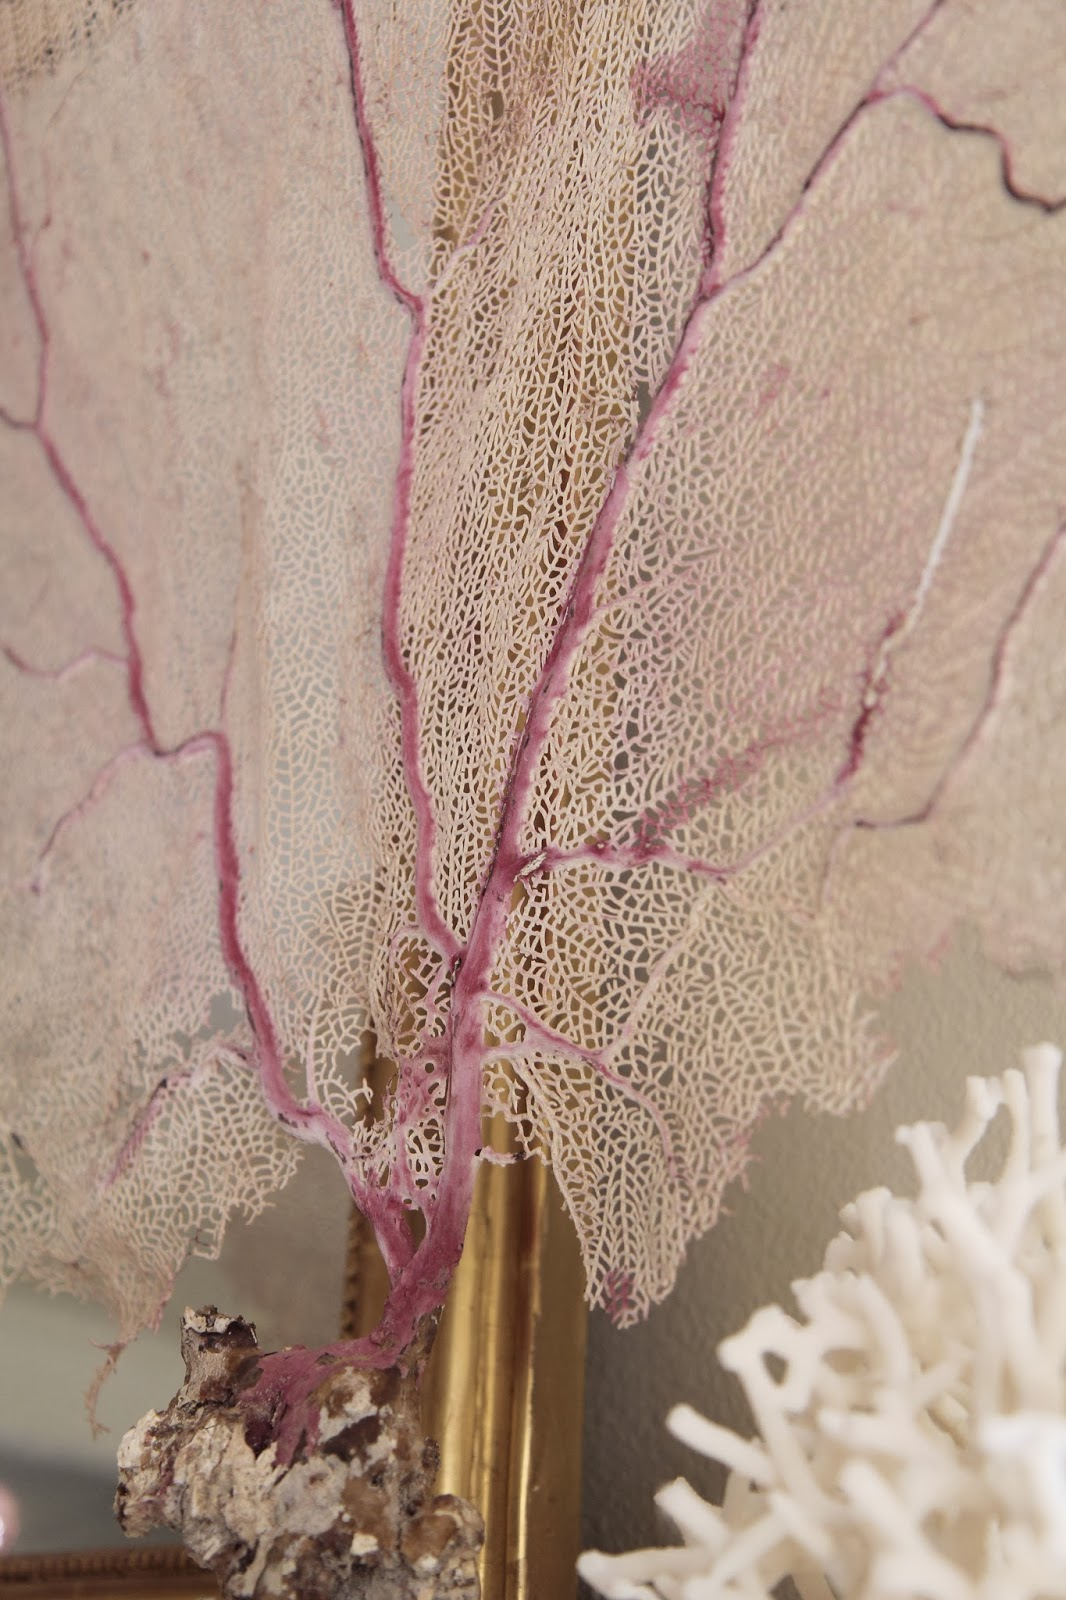 Pink Seafan Coral on Mantle: Nature's Sculptures